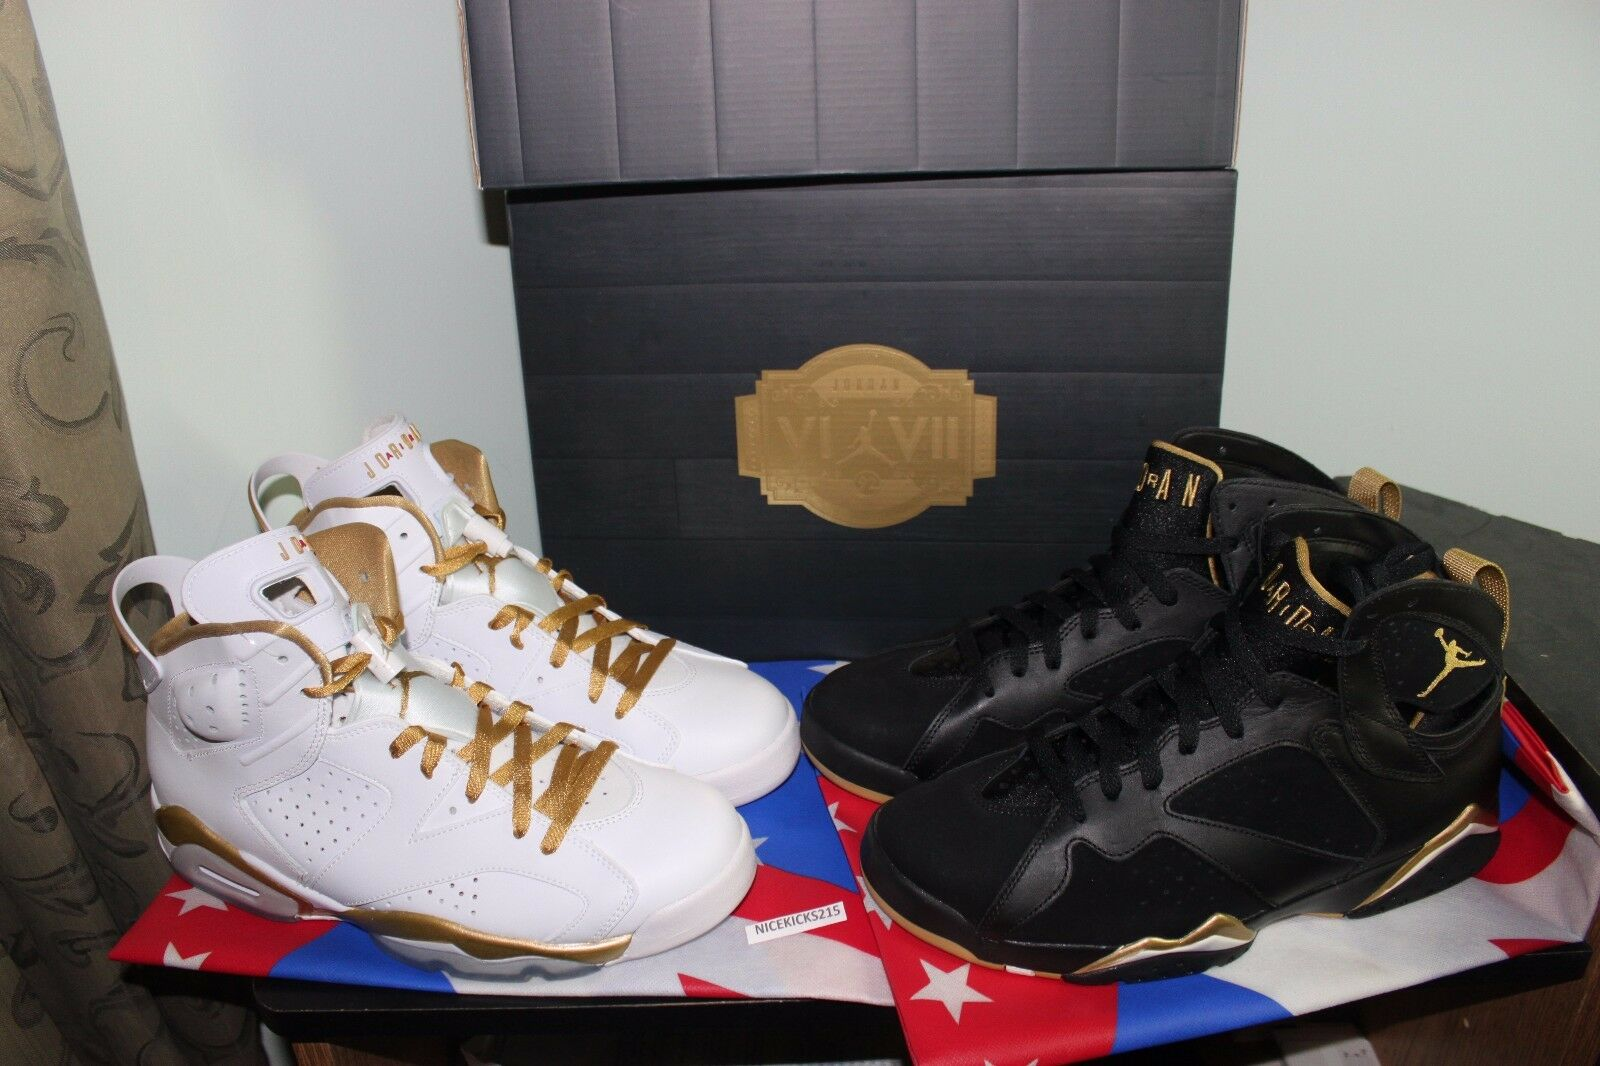 NIKE AIR RETRO JORDAN 6 7 VII VII goldEN MOMENT PACK GMP WHITE BLACK gold SIZE 9